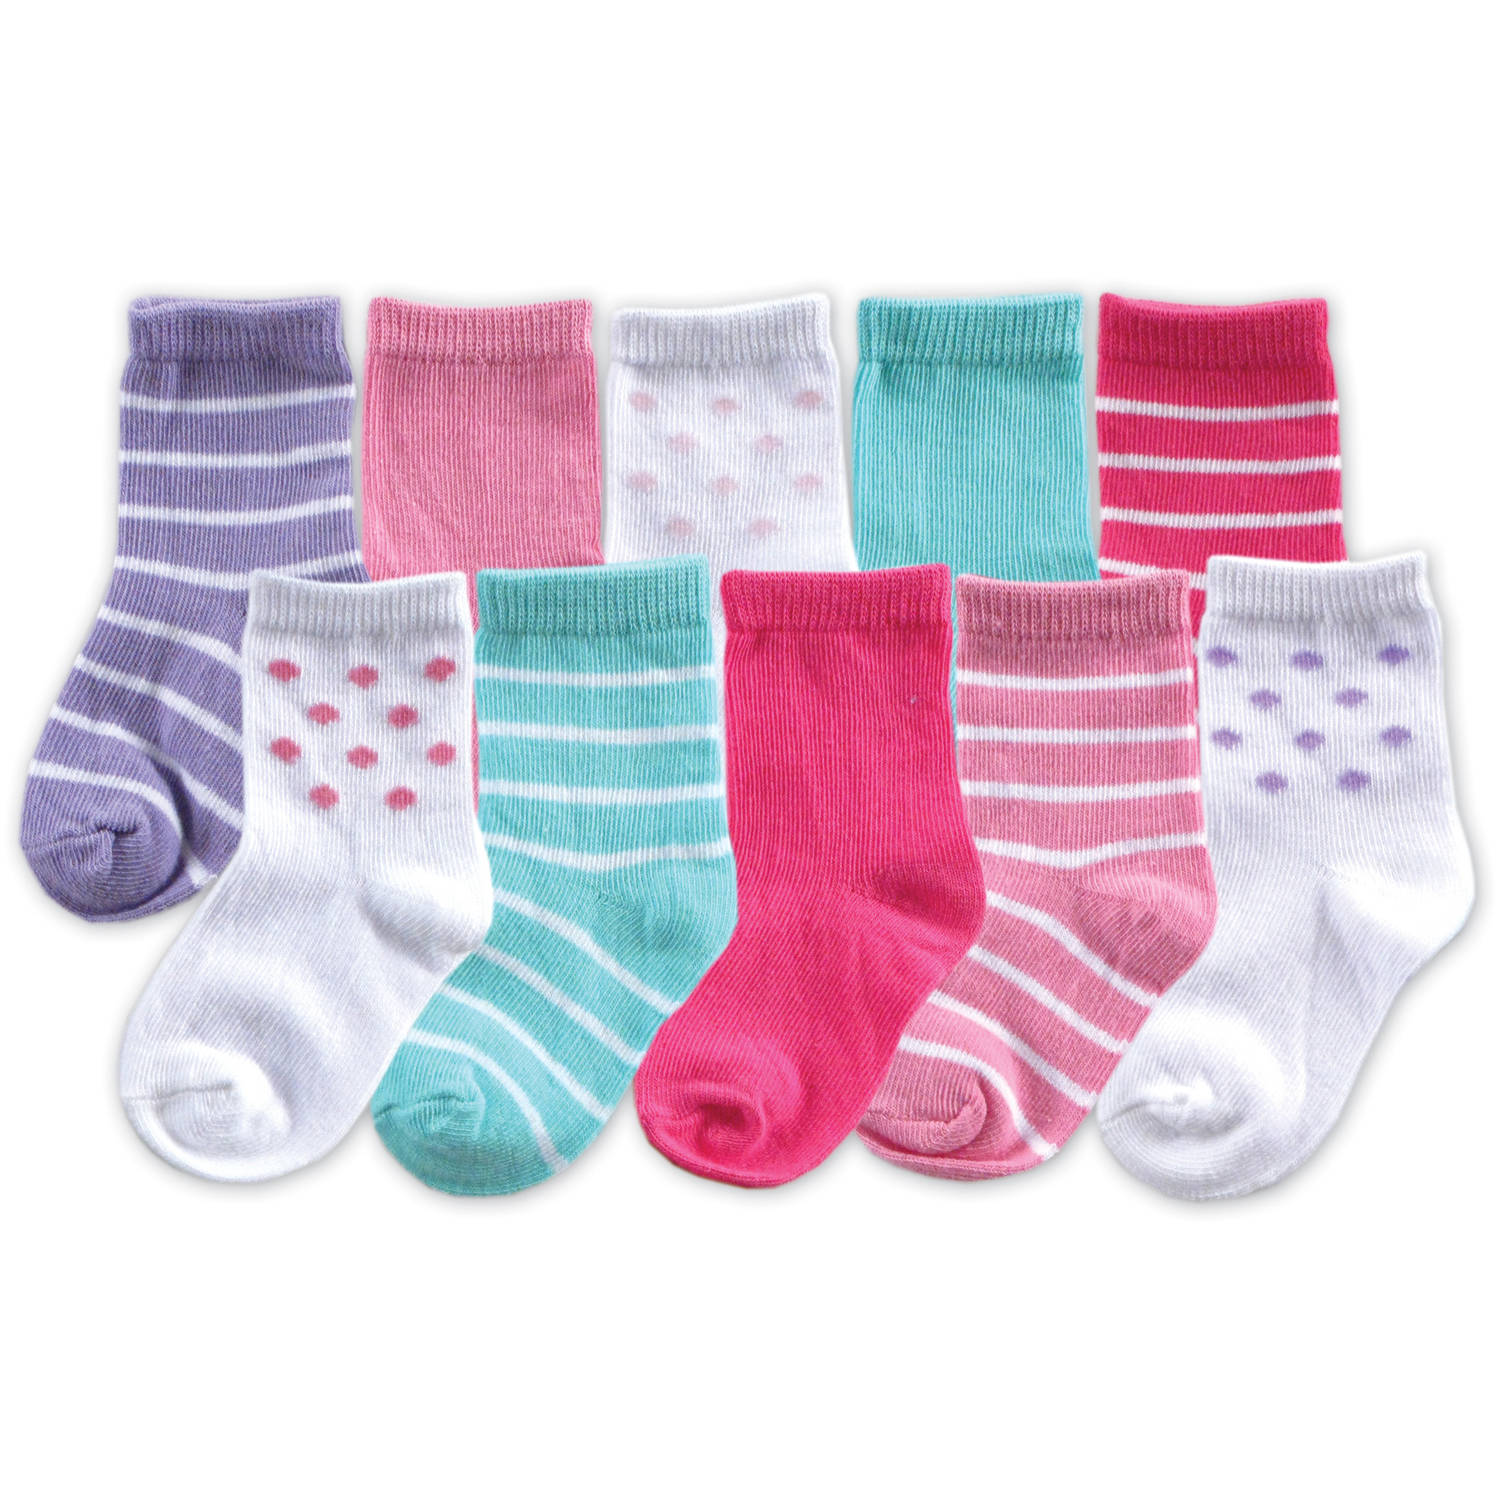 Luvable Friends Newborn Baby Girl Socks 10-Piece Giftset, Pink